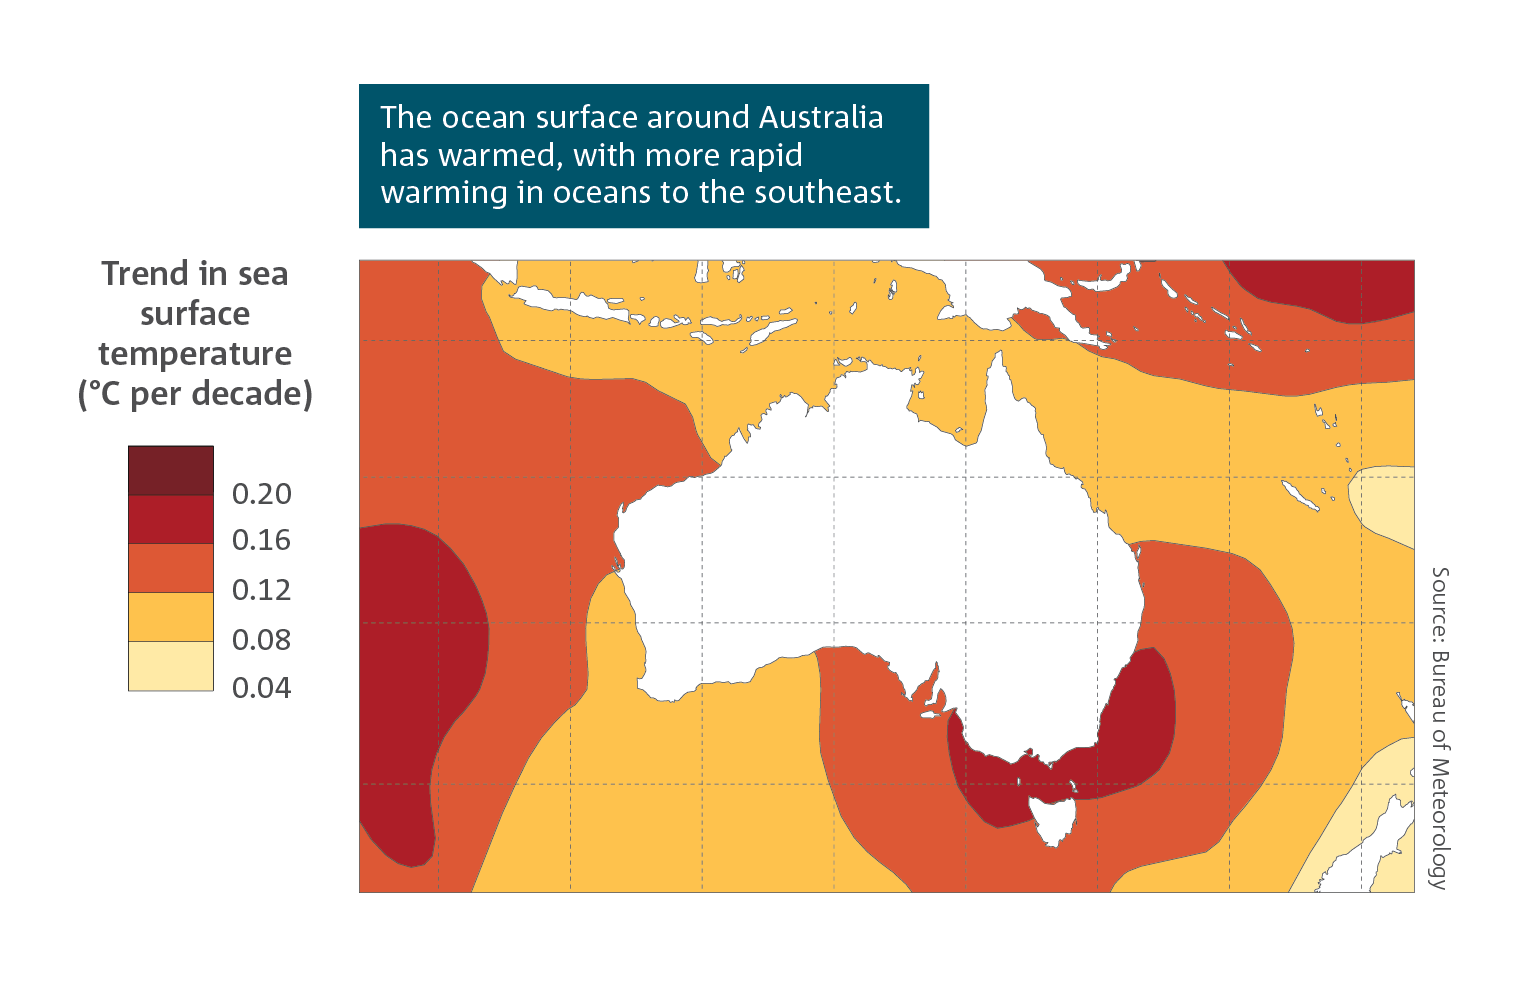 The ocean surface around Australia has warmed, with more rapid warming in oceans to the southeast.  Spatial map of Australian region, which shows trends in mean annual sea surface temperatures from 1950 to 2019.  The highest temperature change (0.2) appears in the Tasman Sea, and to the east coast of NSW.   For a full description of this figure please contact: helpdesk.climate@bom.gov.au